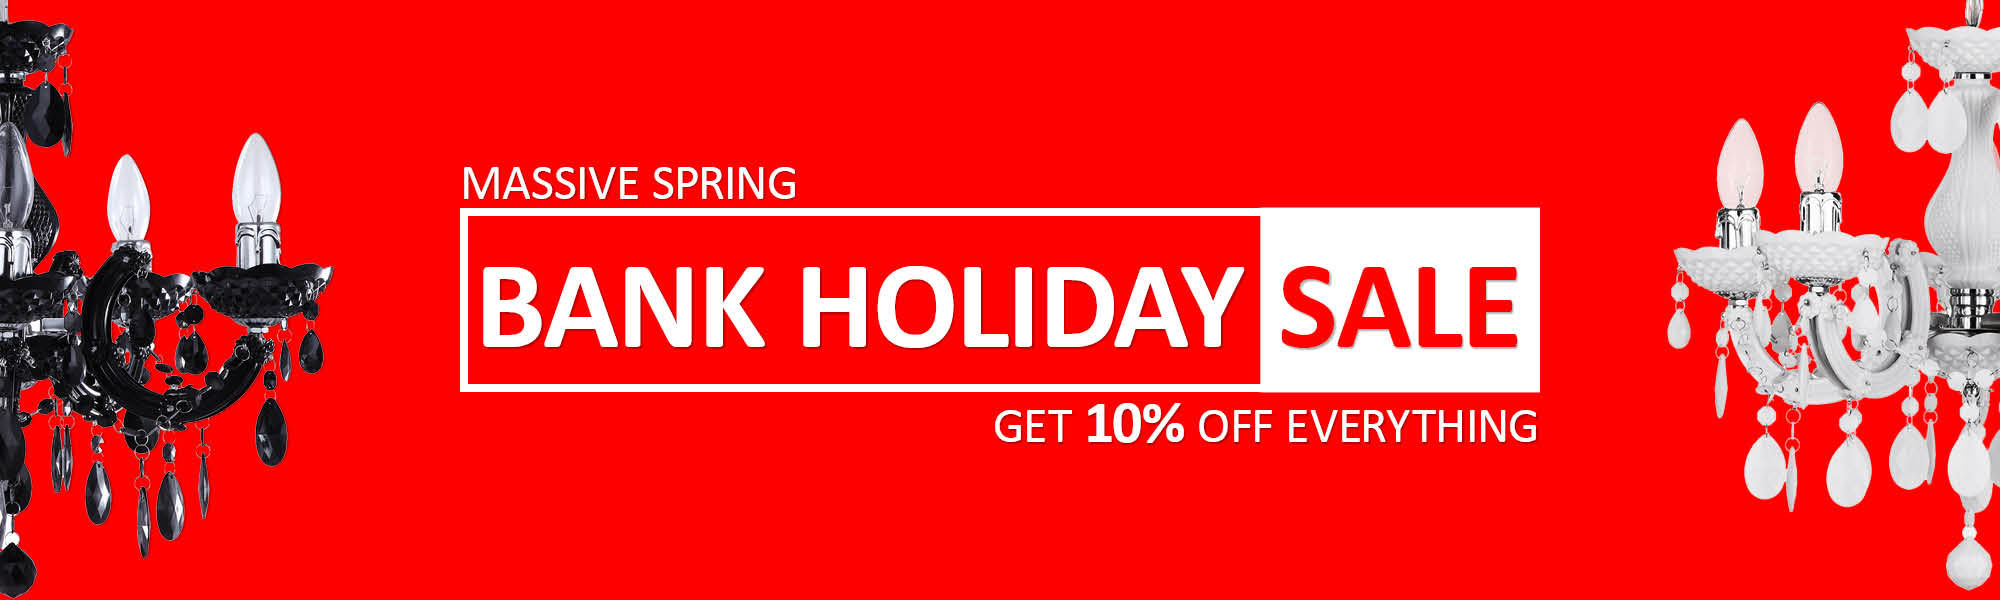 Massive Spring Bank Holiday Sale - Get 10% off Everything